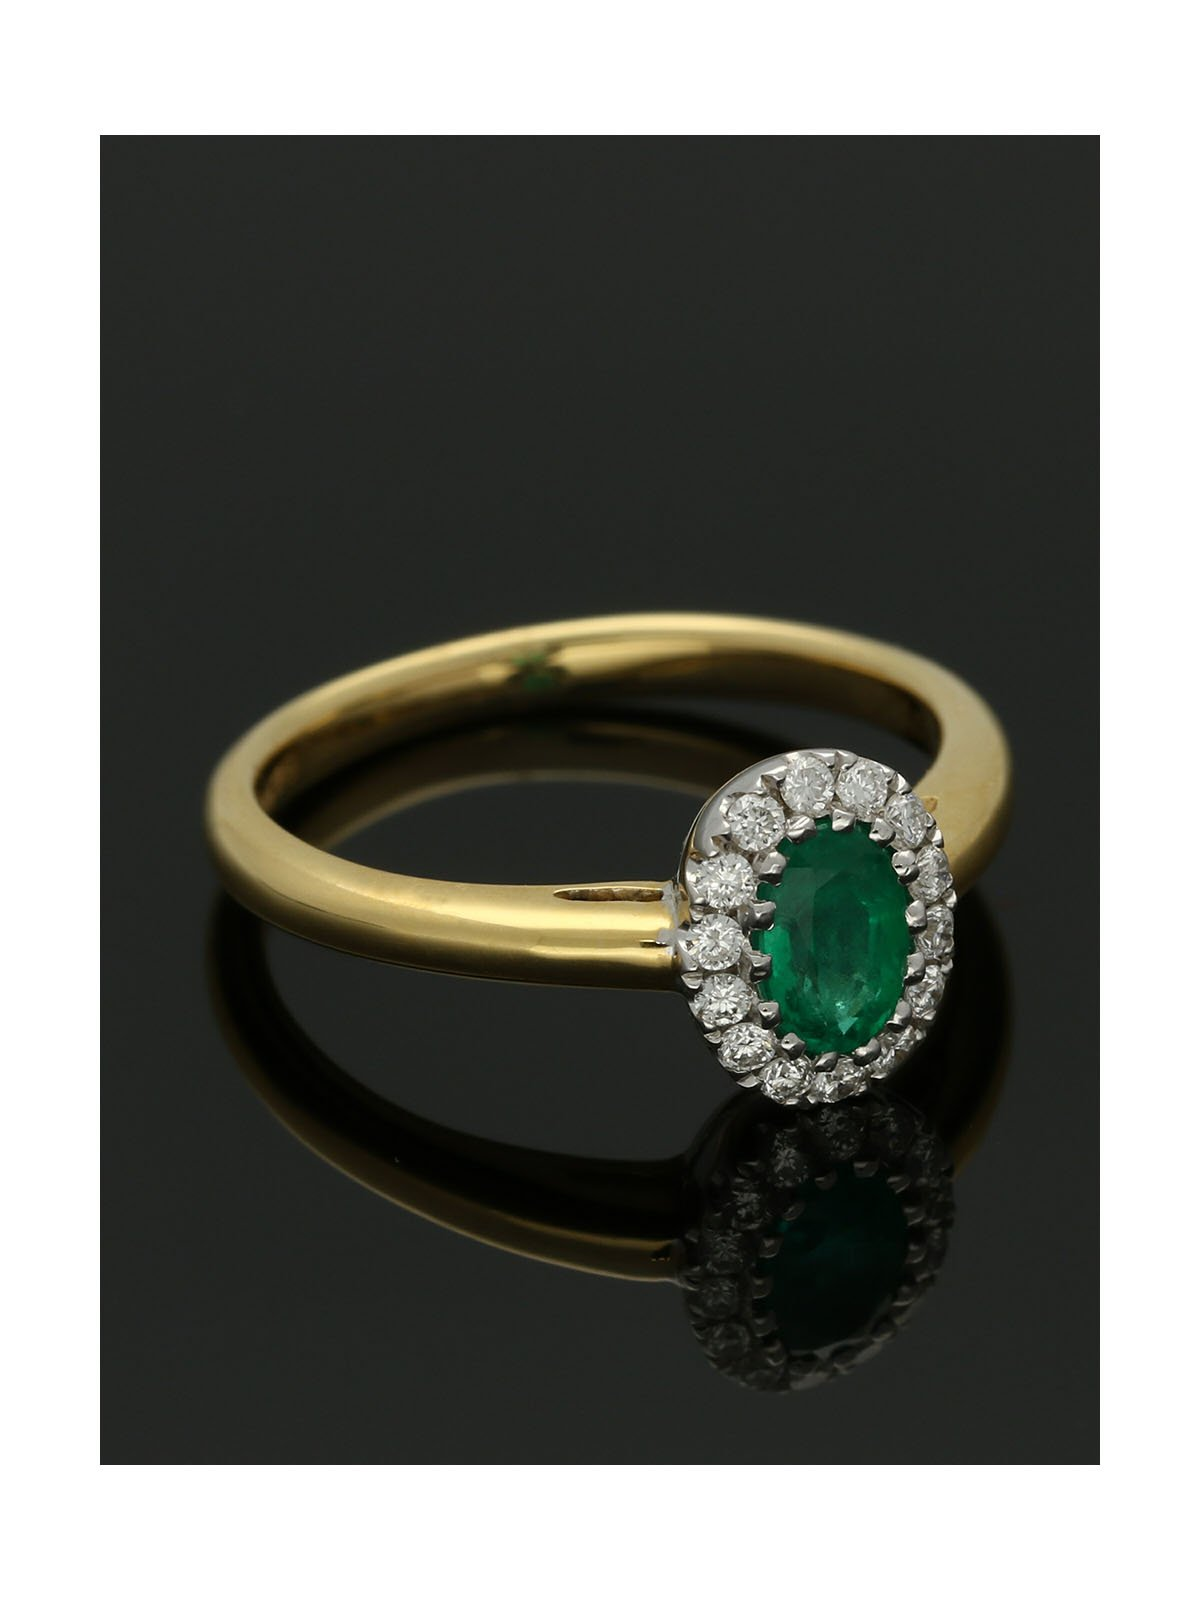 Emerald & Diamond Cluster Ring in 18ct Yellow & White Gold